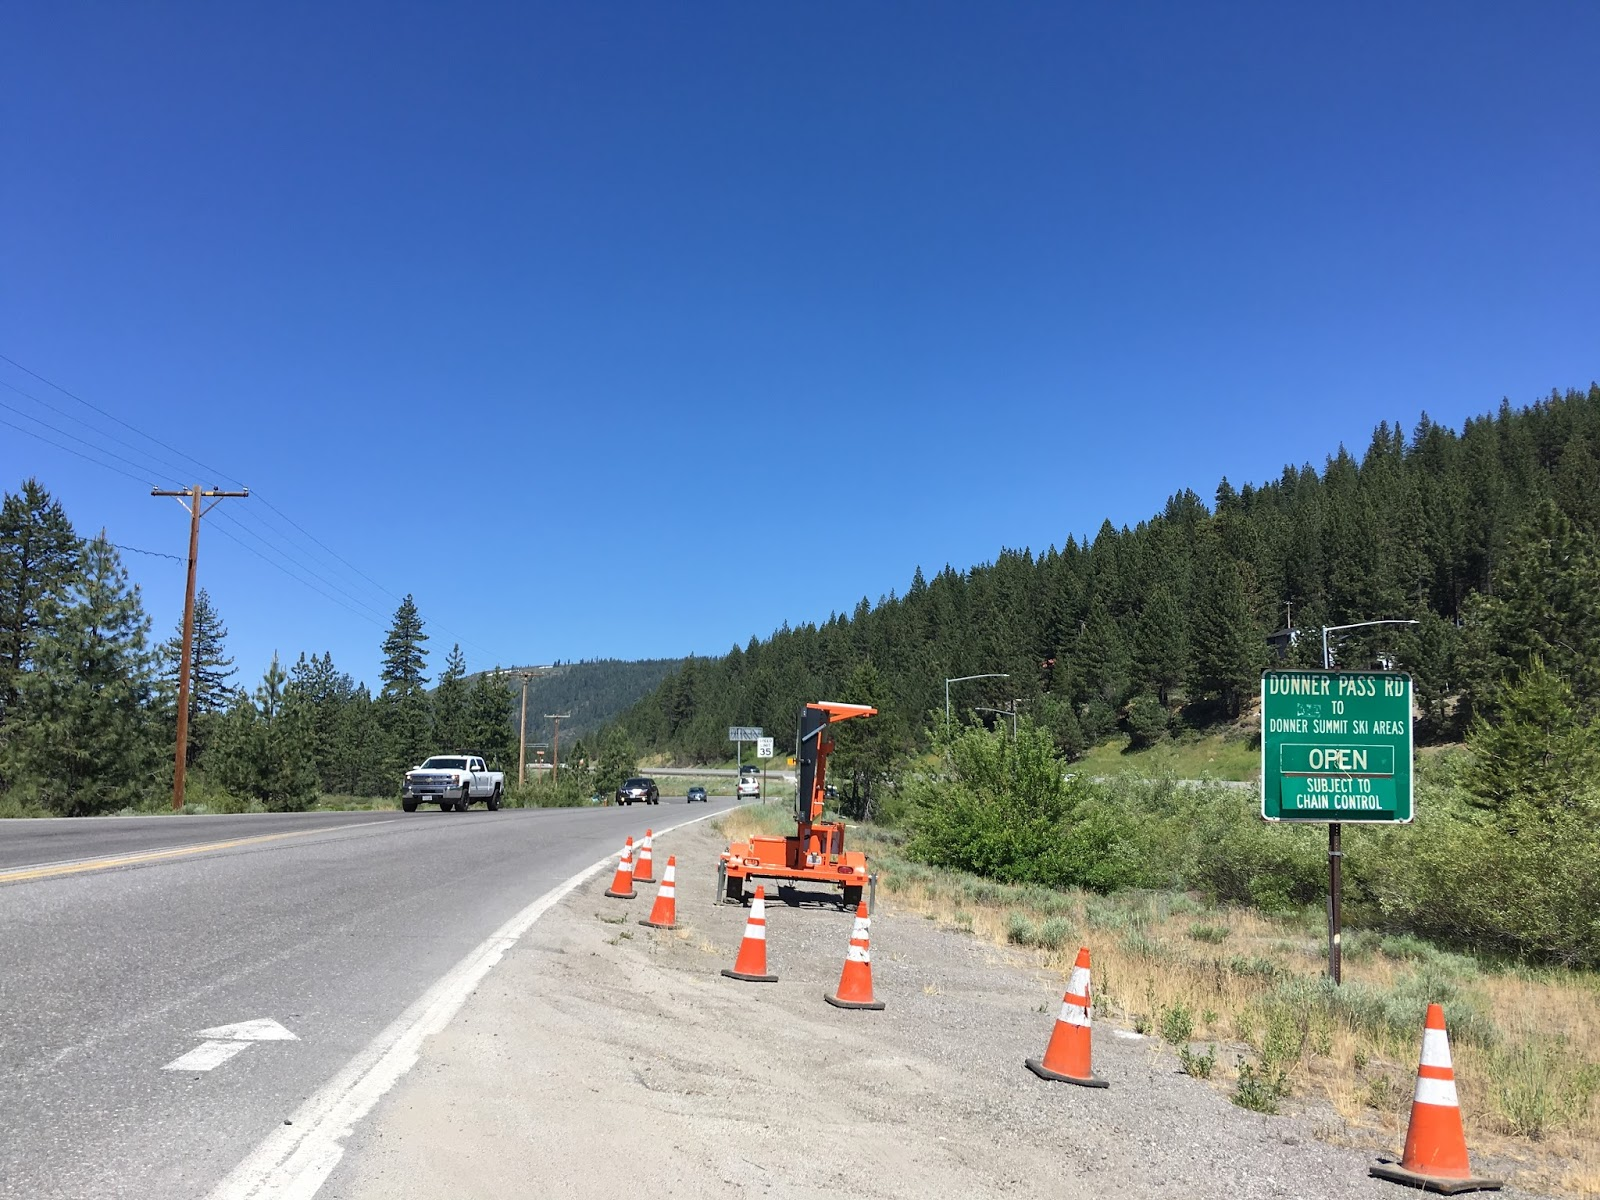 donner pass road runs along the north bank of donner lake donner lake is the location where the donner party camped during the winter of 1846 47 and there